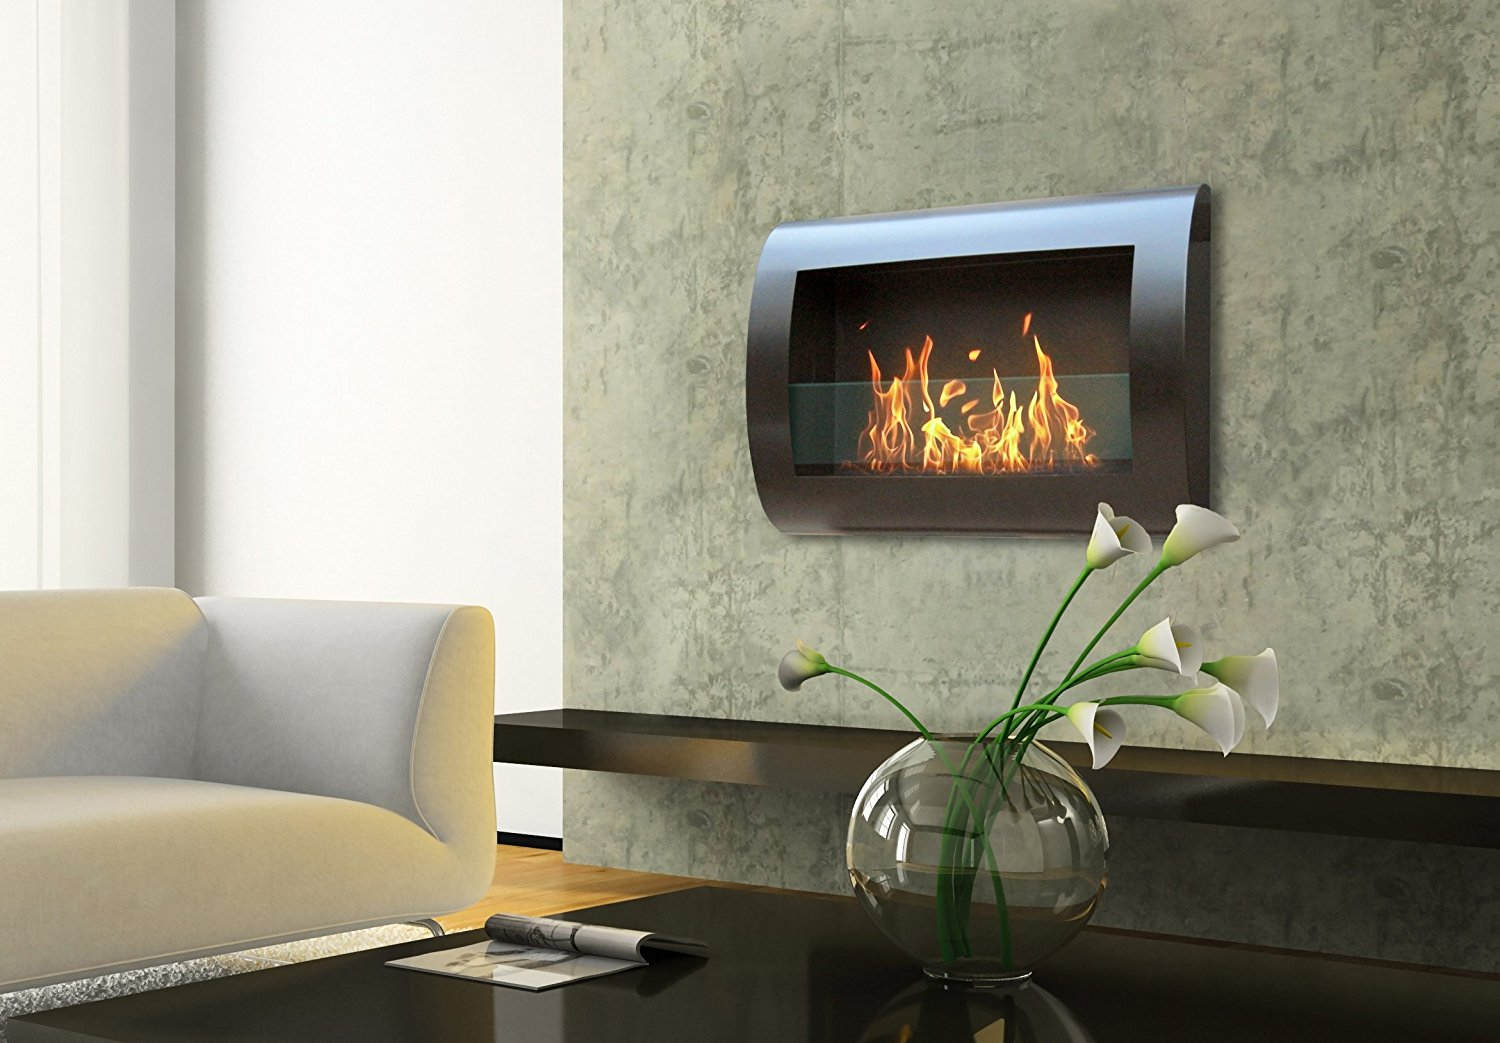 Anywhere Fireplace Chelsea Model In Black Wall Mount Bioethanol